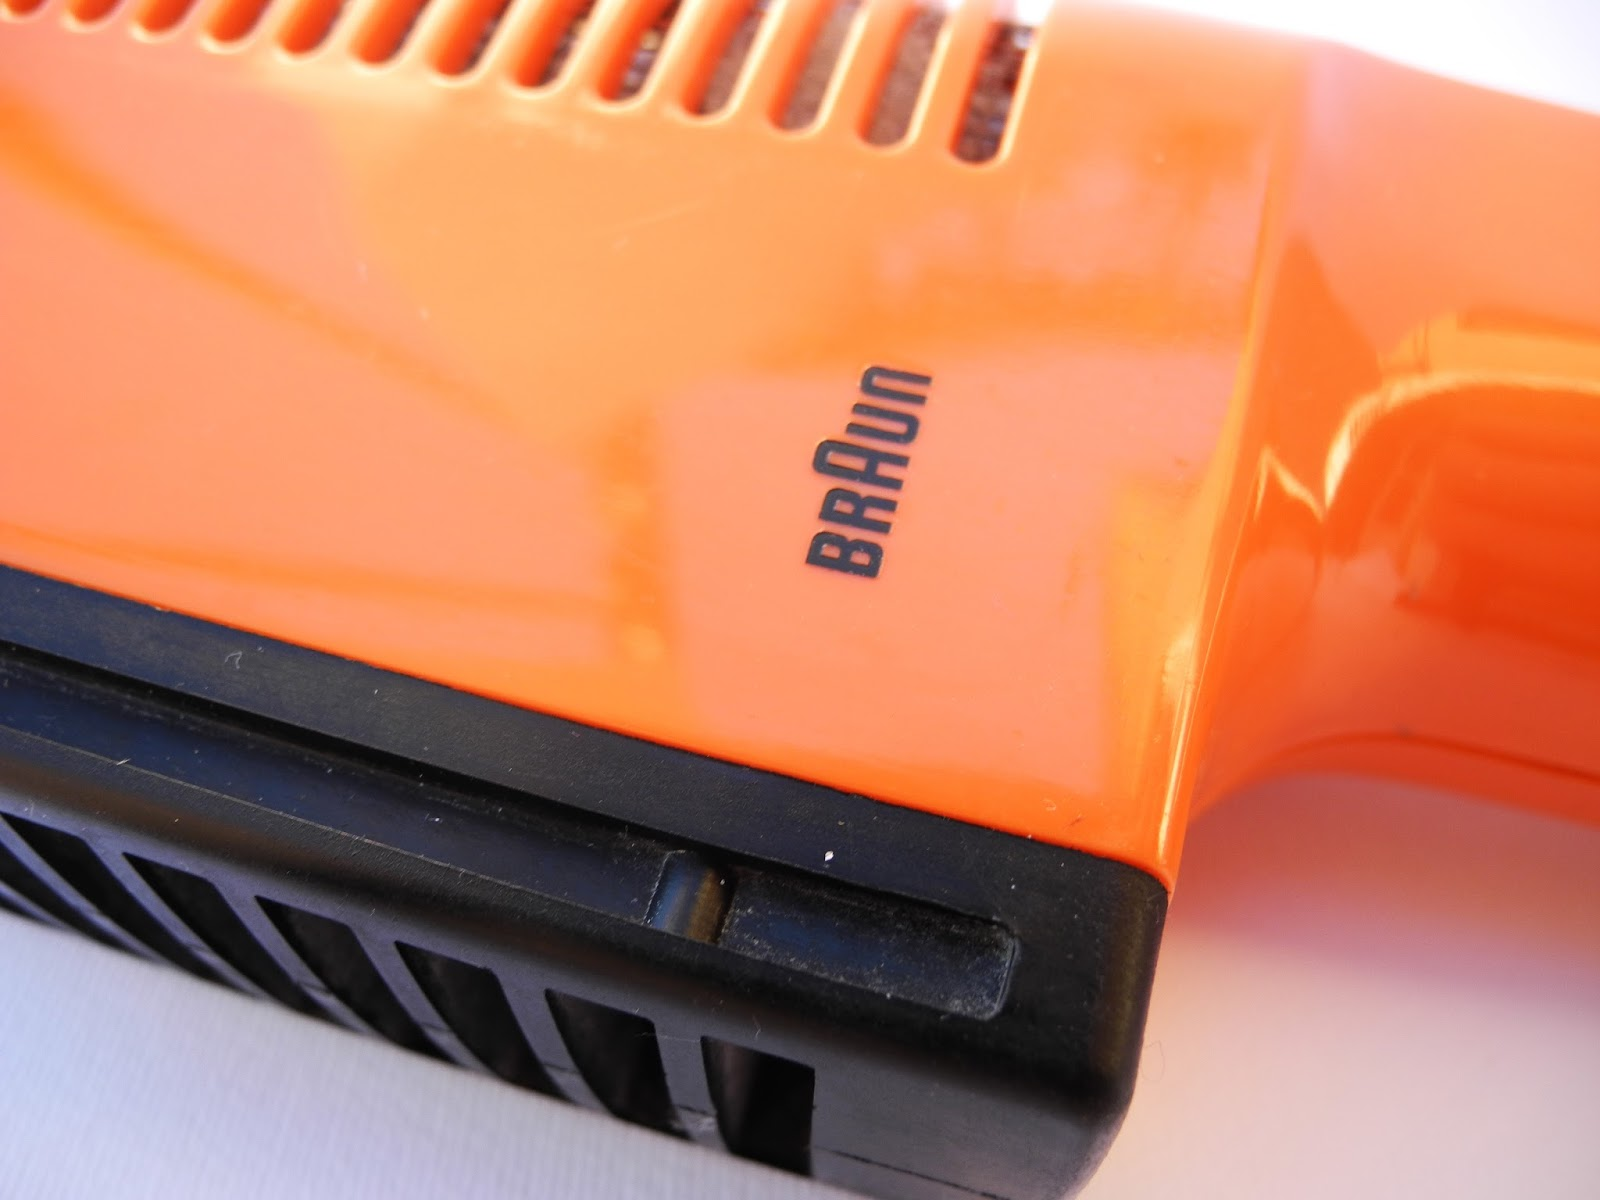 Braun AG Hair Dryer Type: 4402 | OUR BRAUN